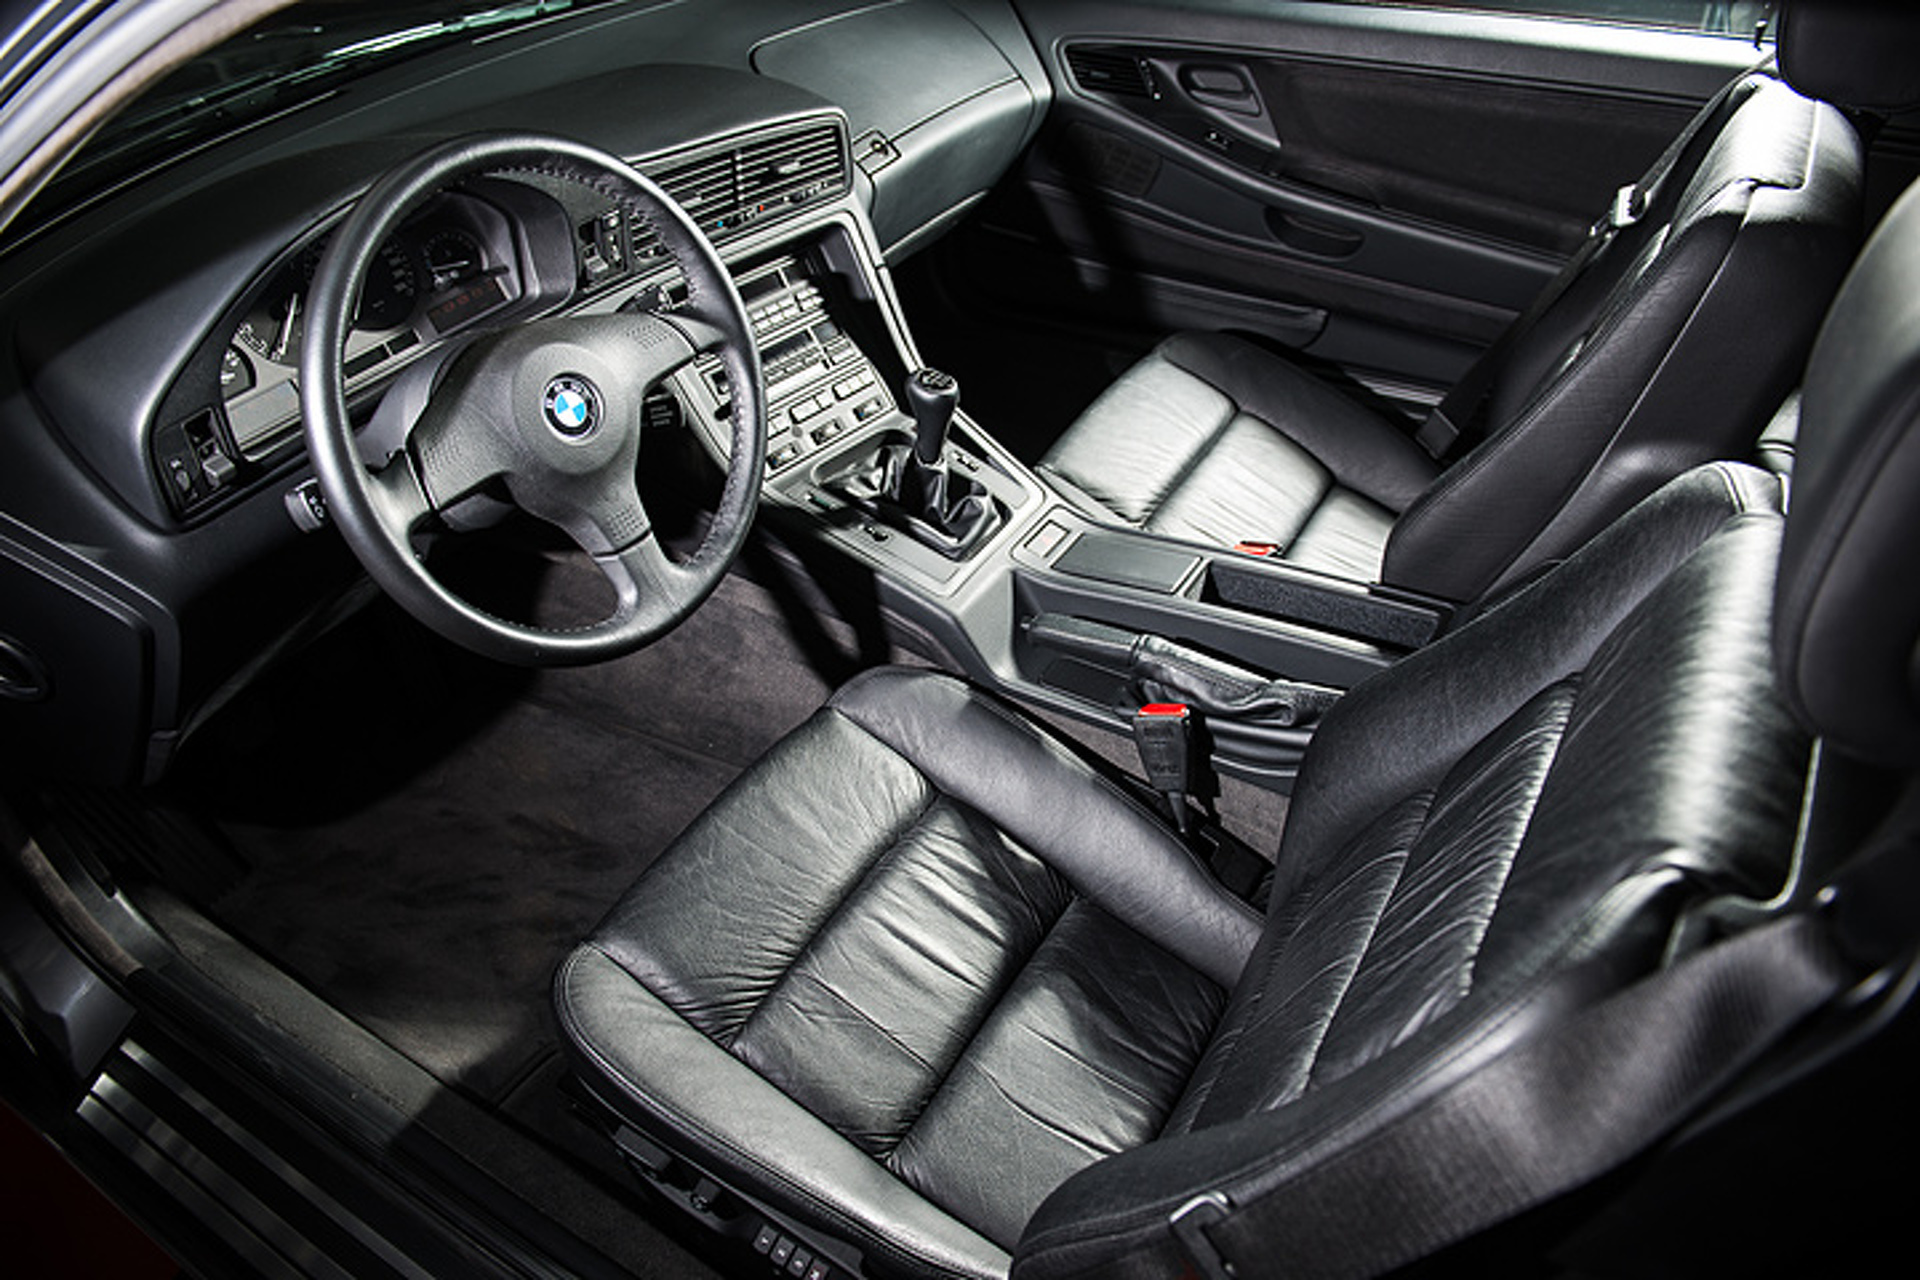 This is Essentially a Brand New 1991 BMW 850i Sports Car